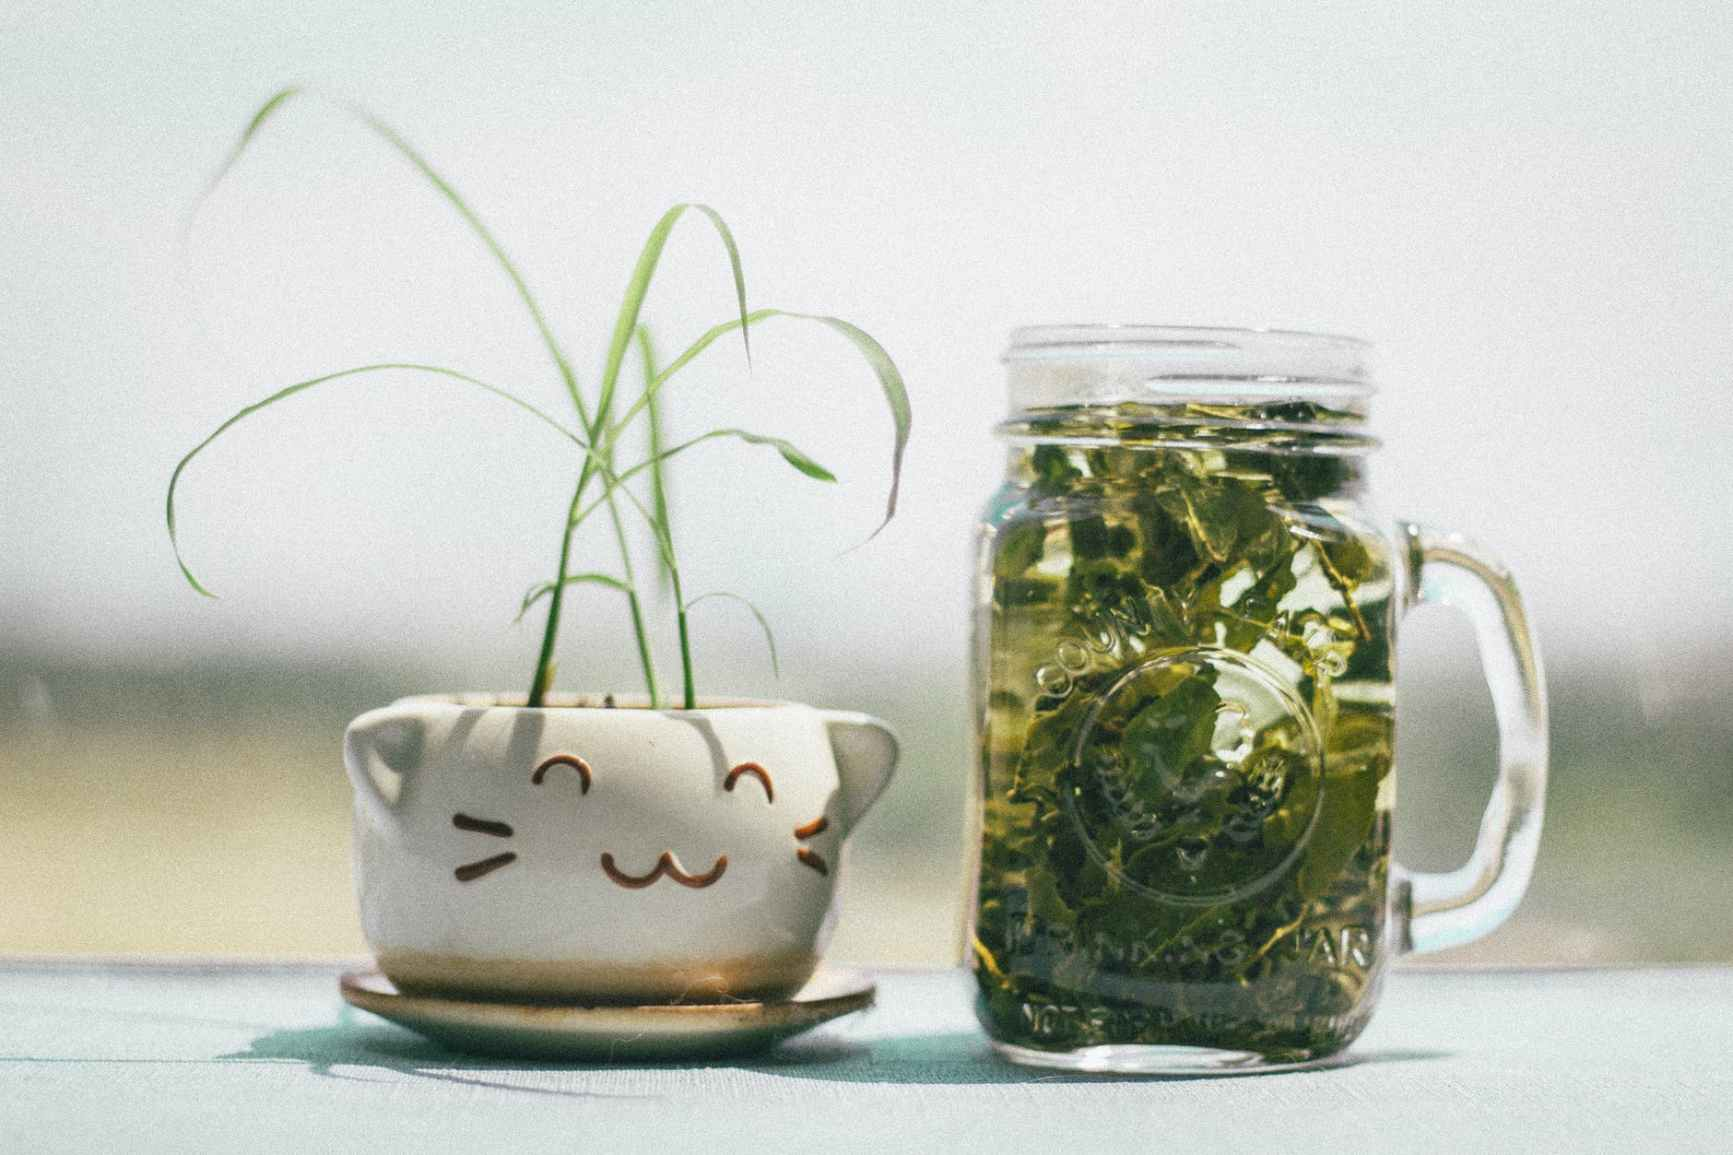 green leafed plant beside clear glass mg